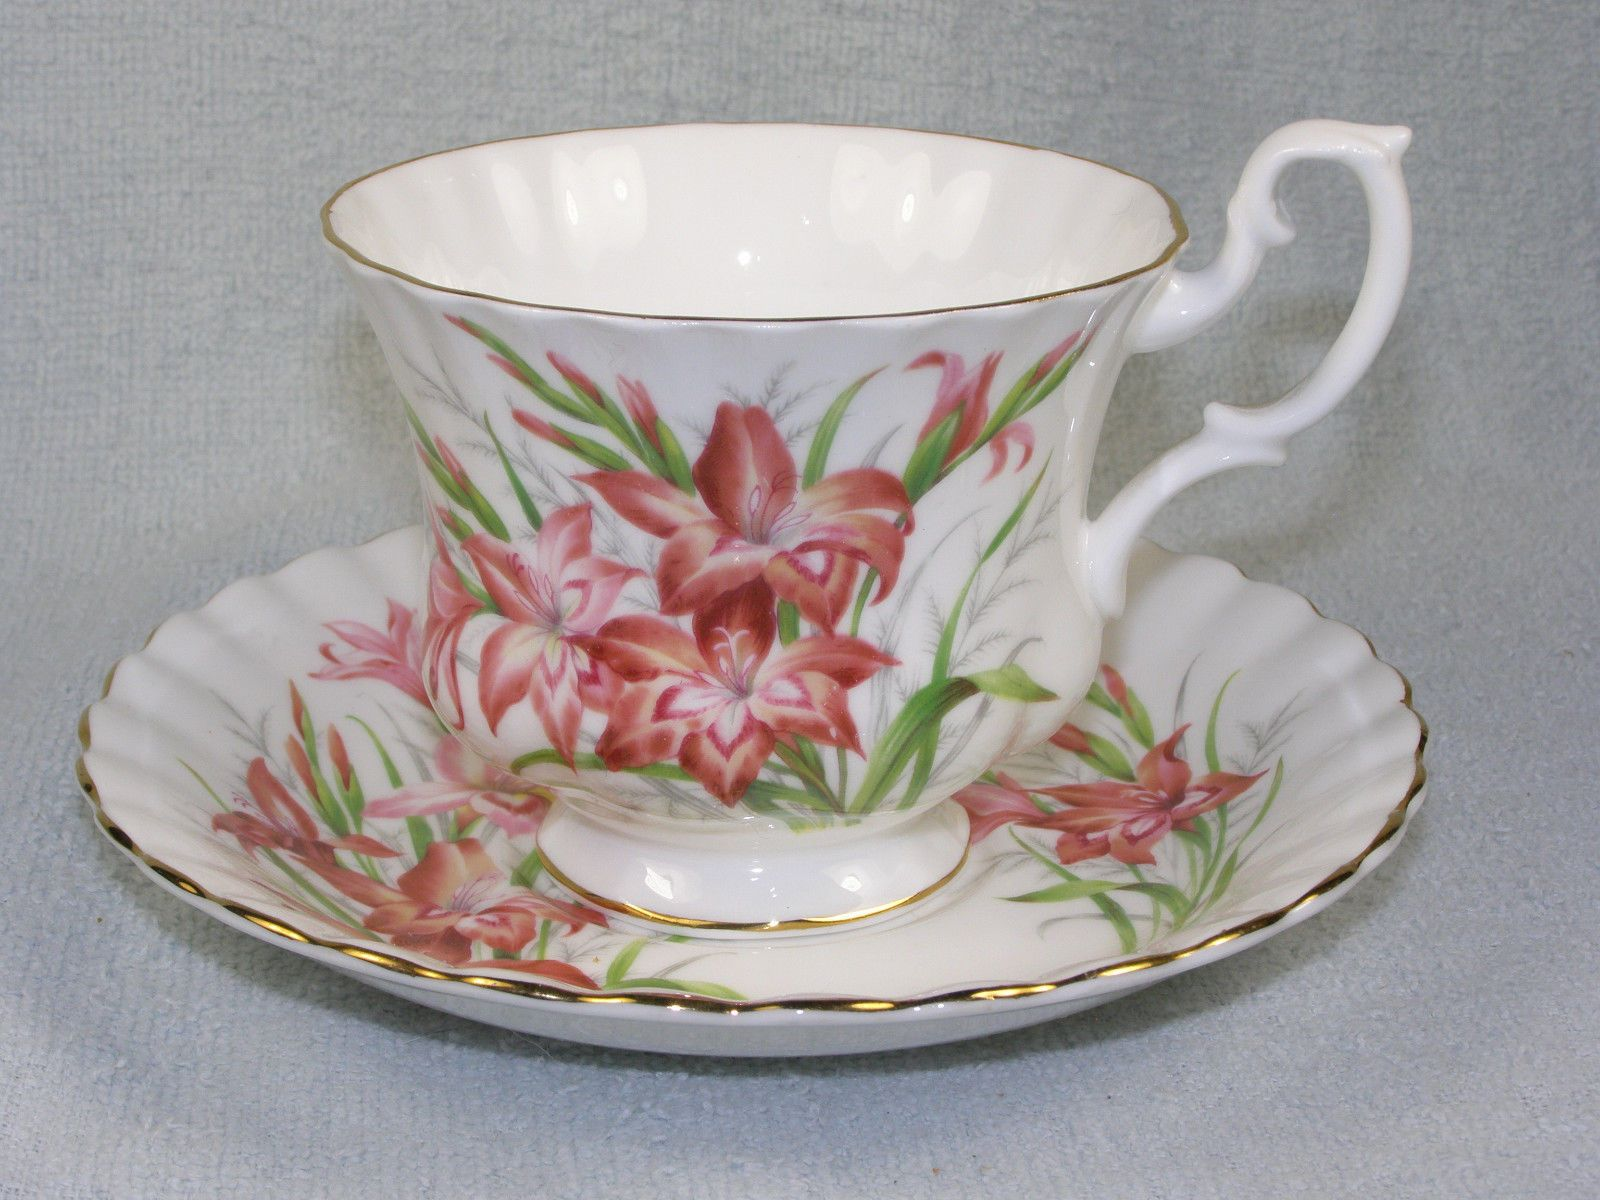 royal albert bone china made in england royal albert bone china cup u0026